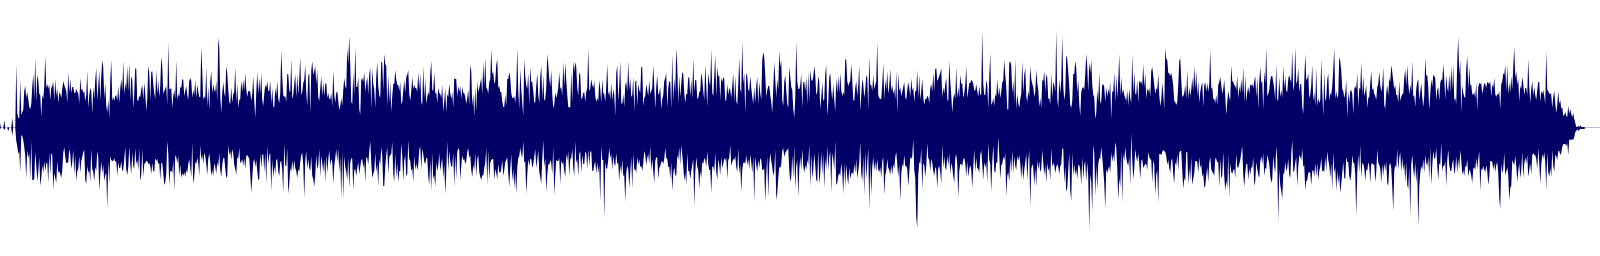 waveform of track #96772